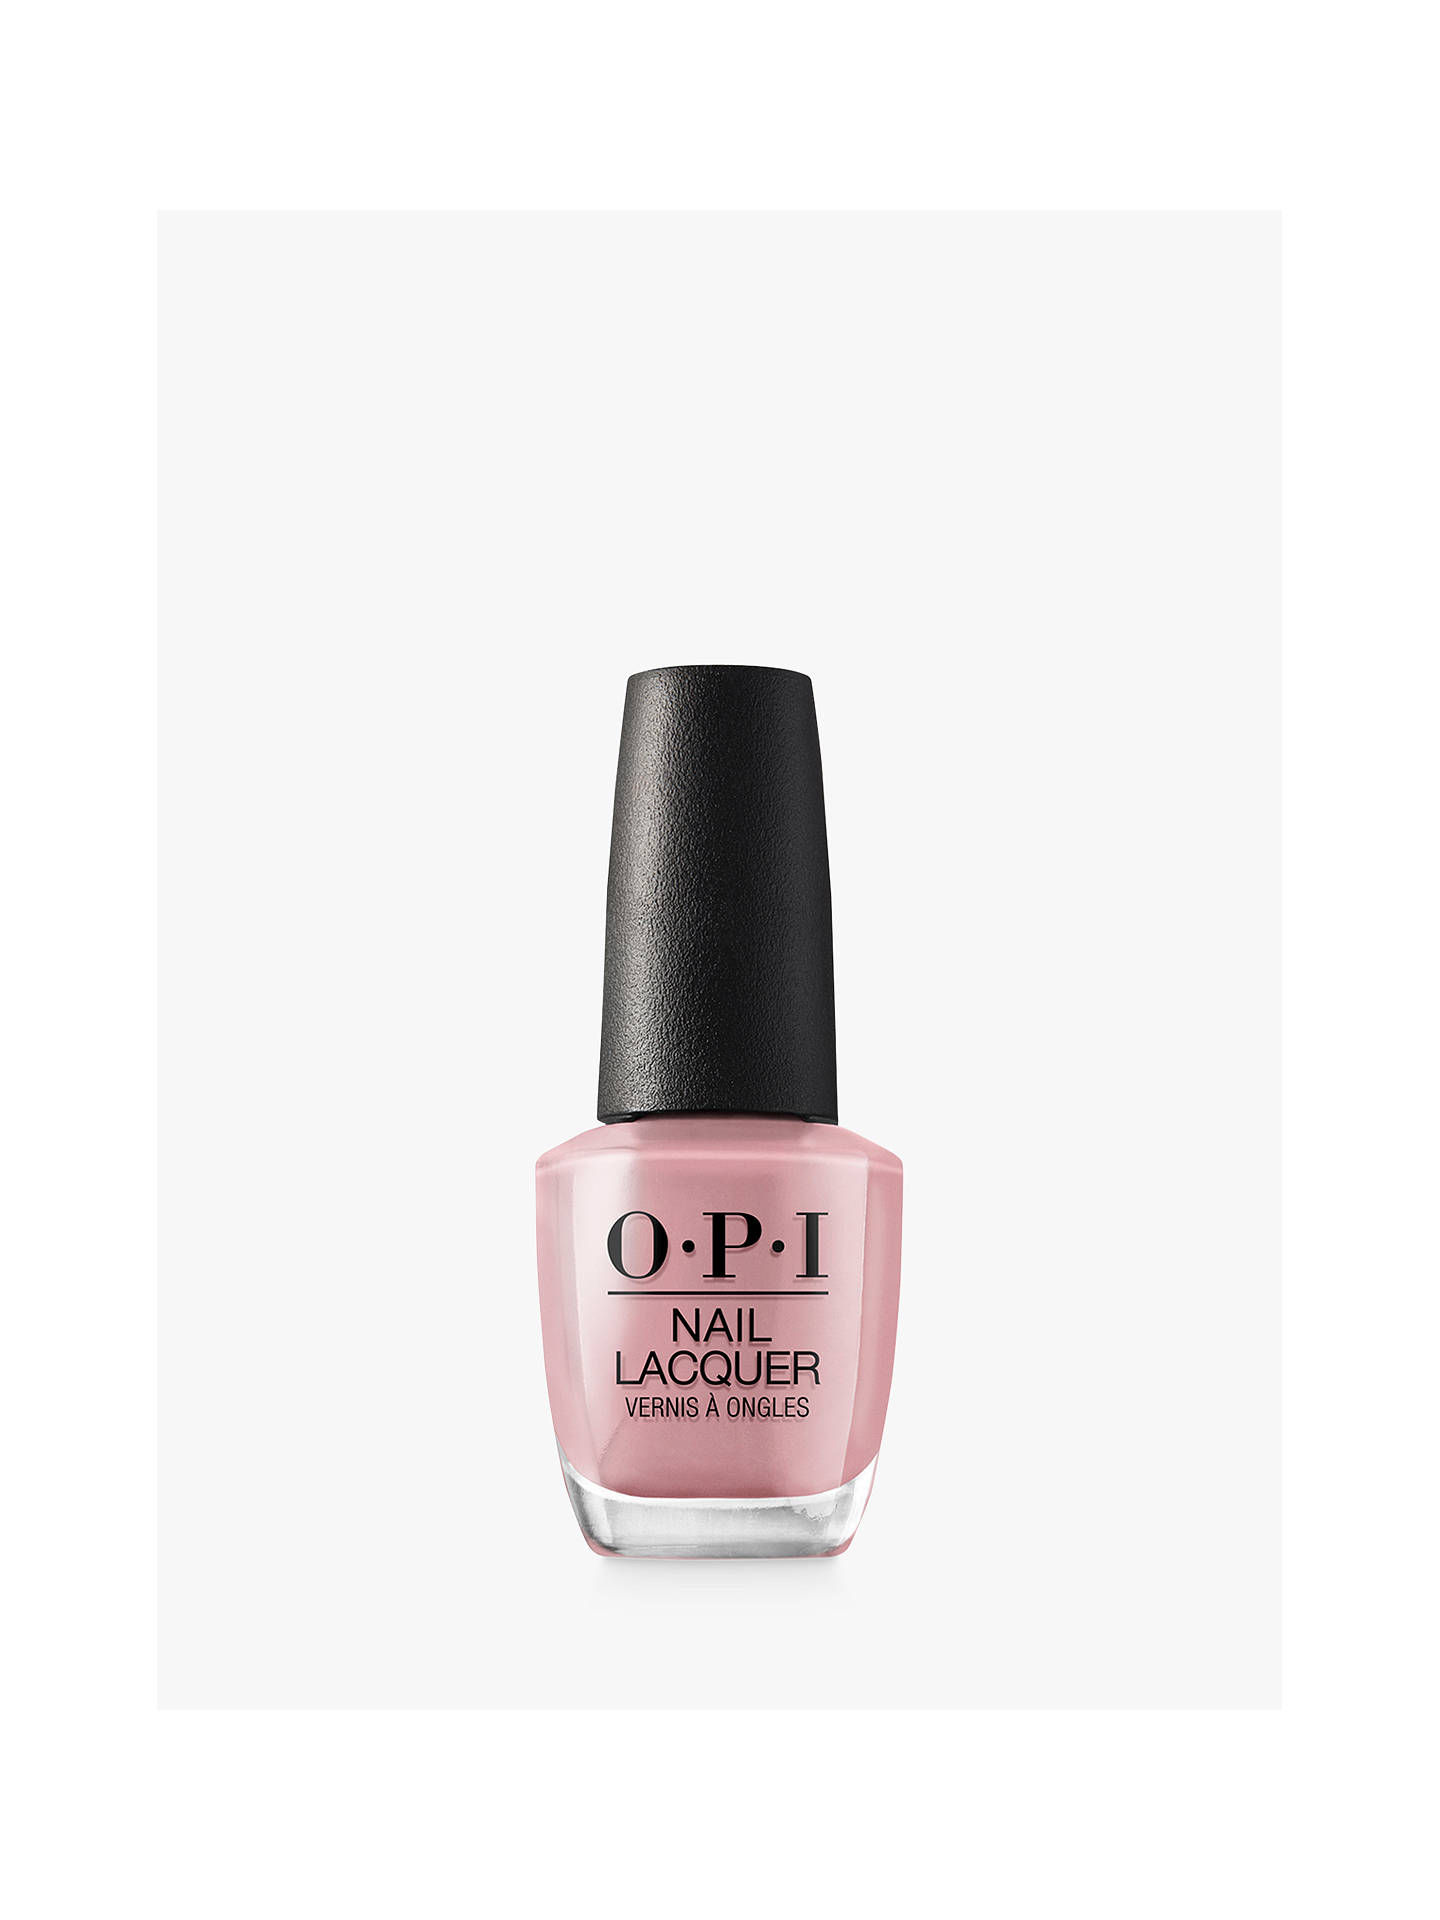 BuyOPI Nails - Nail Lacquer - Neutrals, Tickle My France-y Online at johnlewis.com